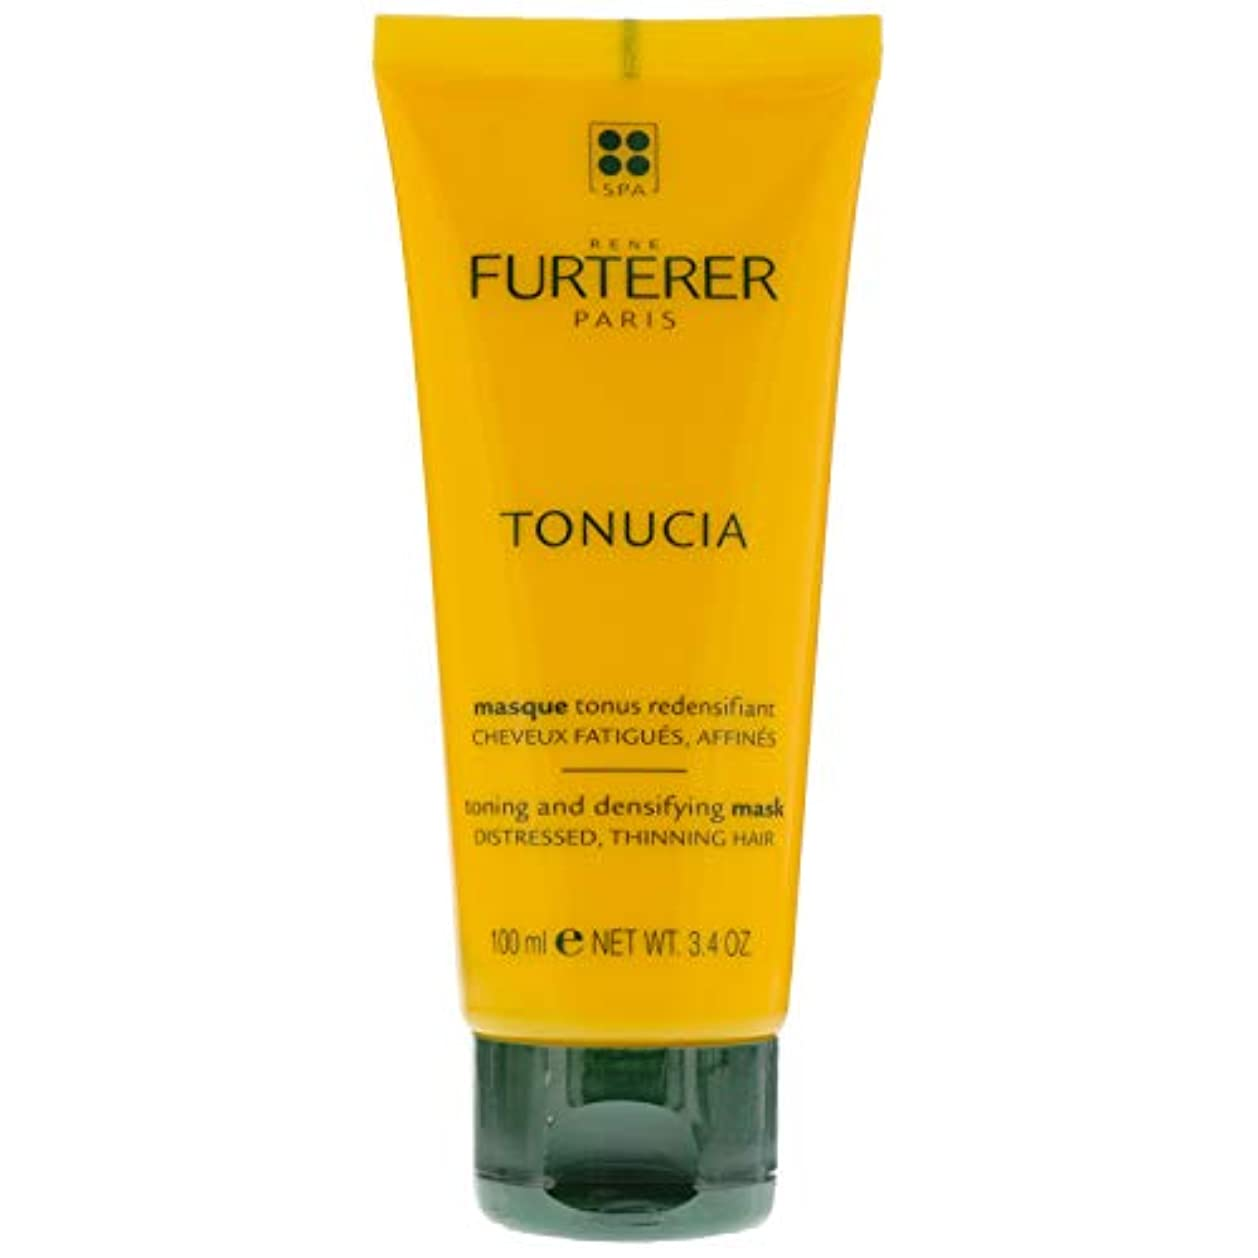 ルネ フルトレール Tonucia Thickening Ritual Toning and Densifying Mask (Distressed, Thinning Hair) 100ml/3.4oz並行輸入品